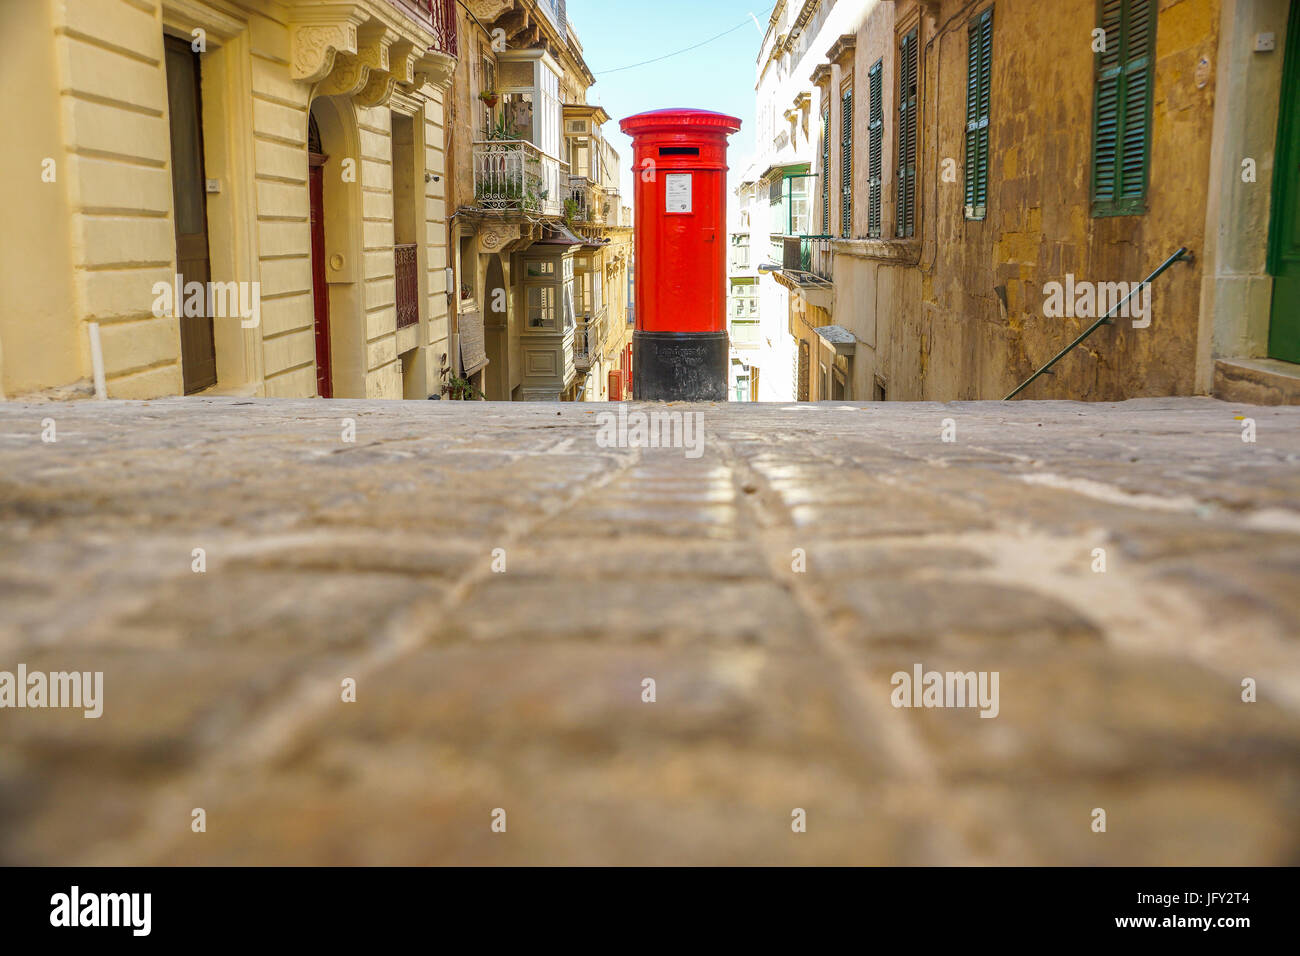 A photograph of an old British postbox standing in Valletta, Malta. The old stone buildings of Valletta surround - Stock Image